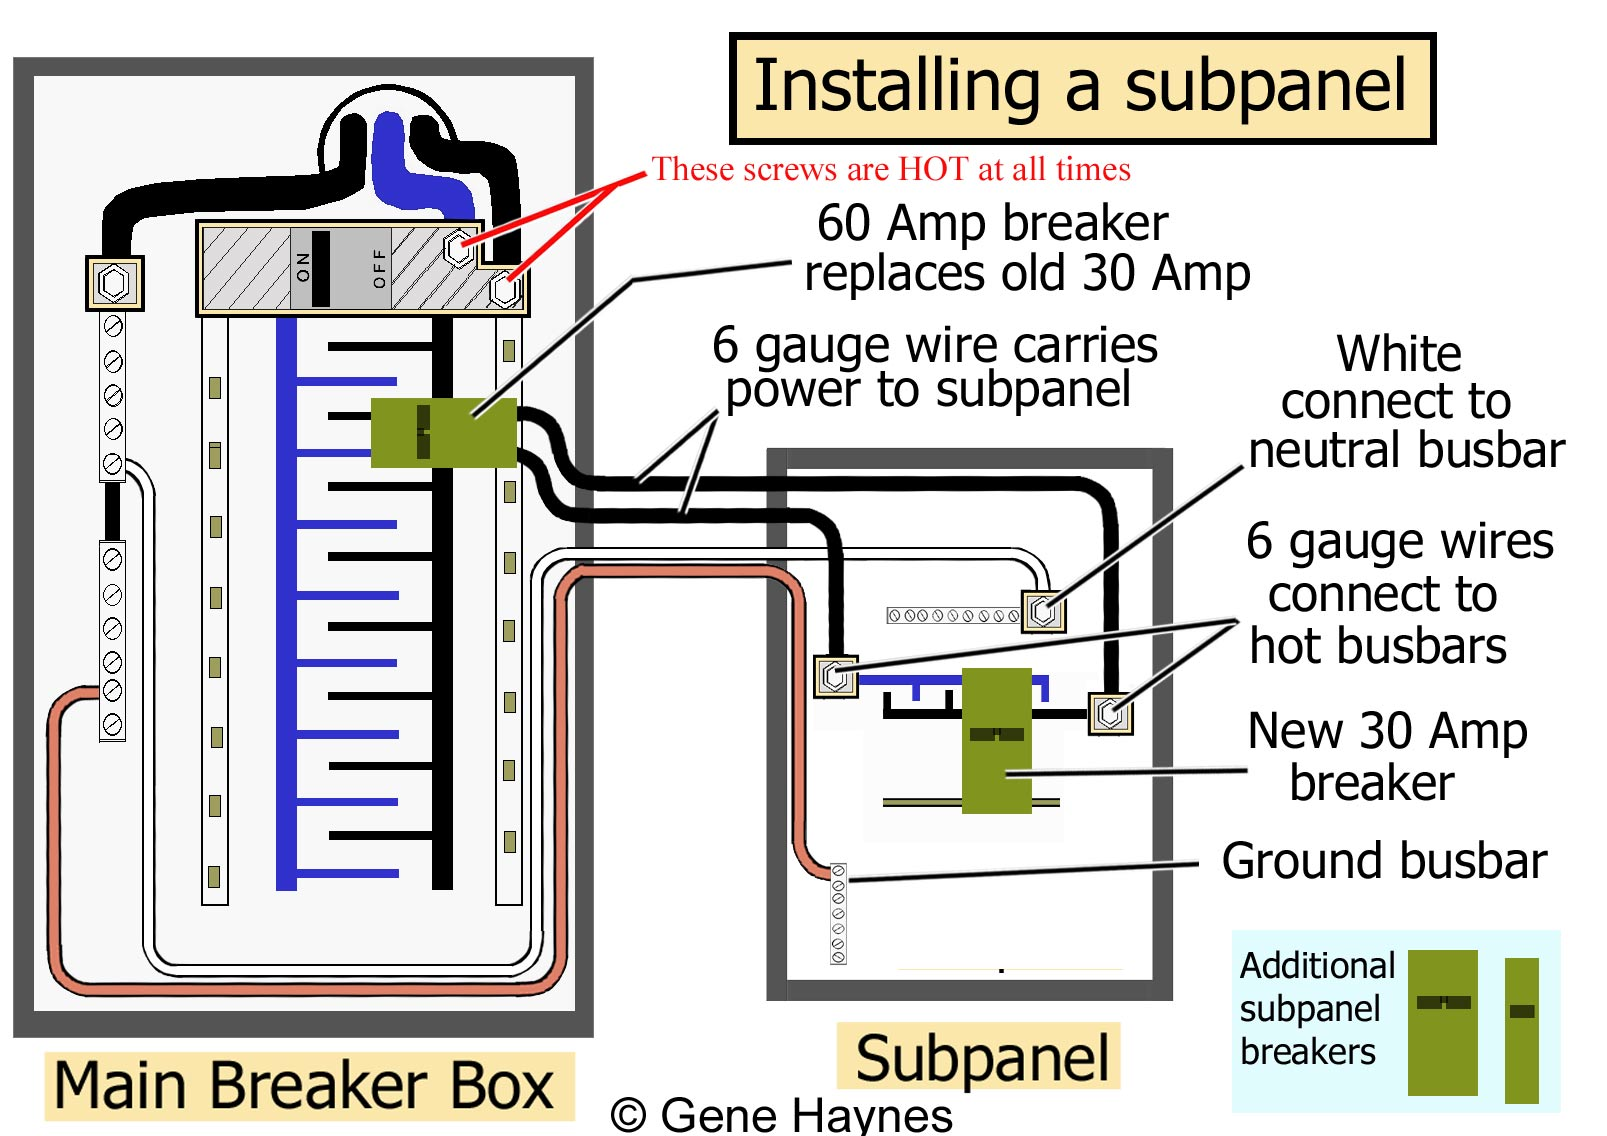 How to install a subpanel how to install main lug 1 60 150 amp breaker replaces any 240 breaker in main box near top of box greentooth Gallery